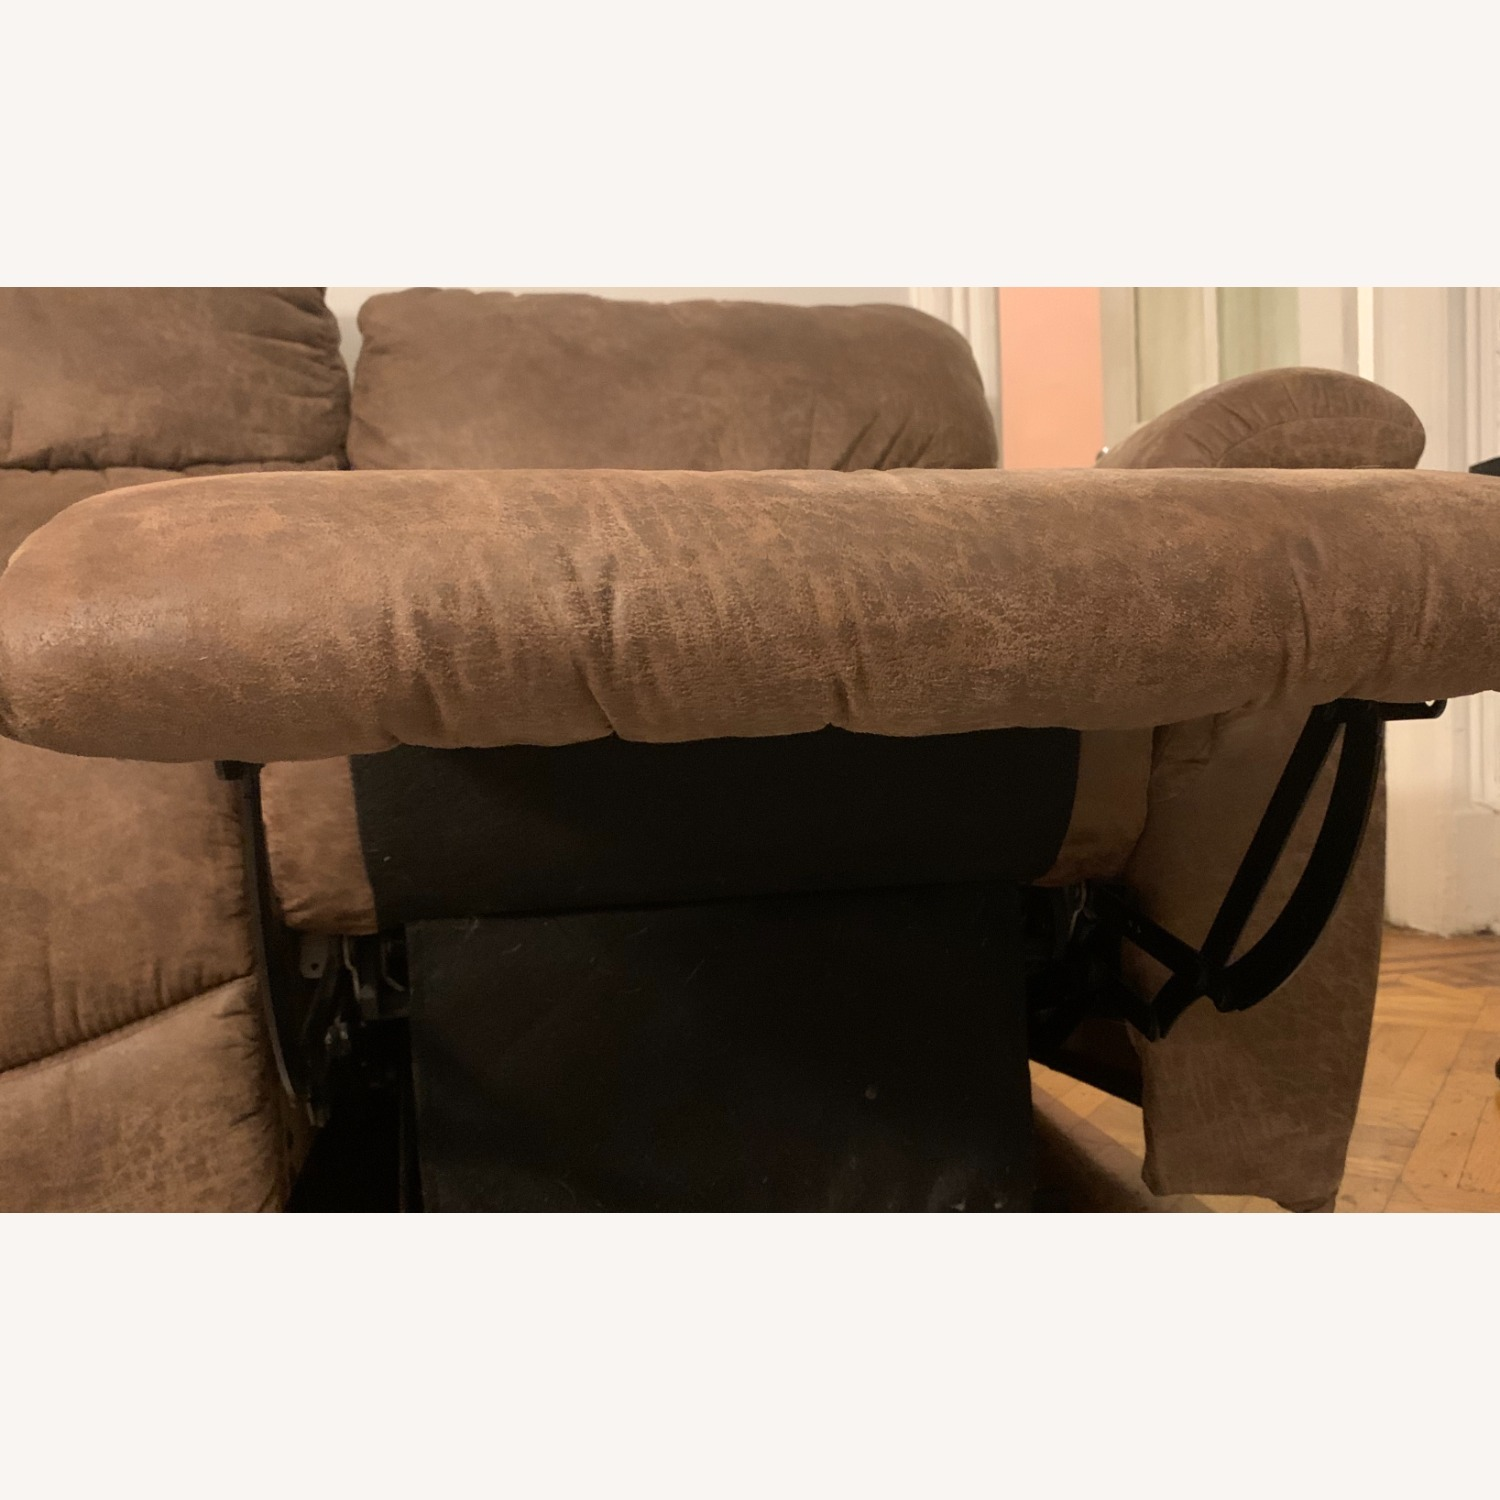 La-Z-Boy Ddual Reclining Couch - brown - image-5